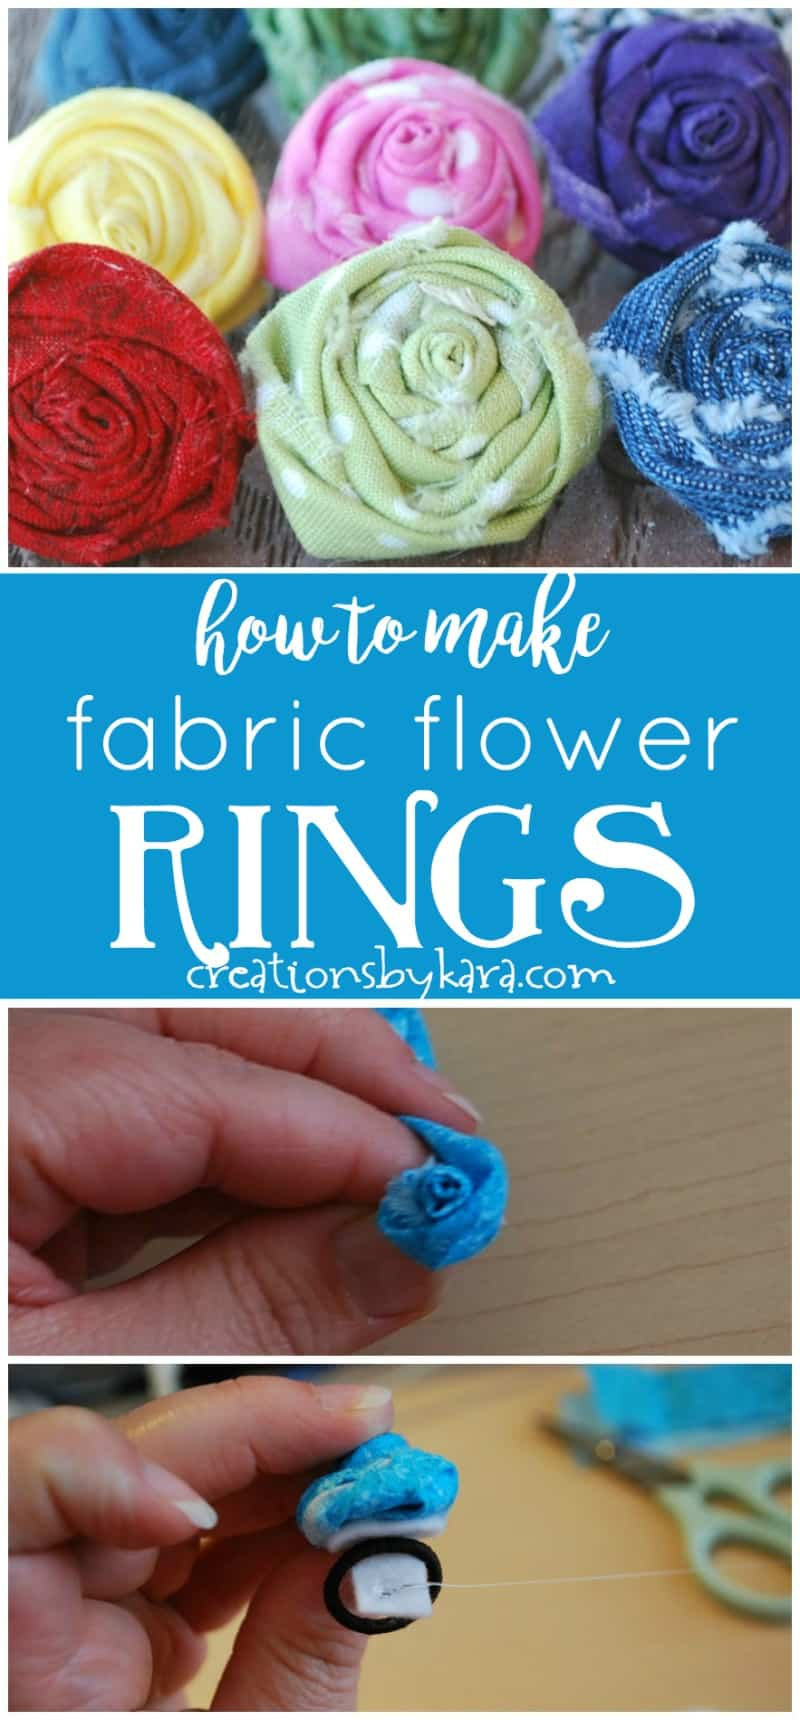 How to make Fabric Flower Rings